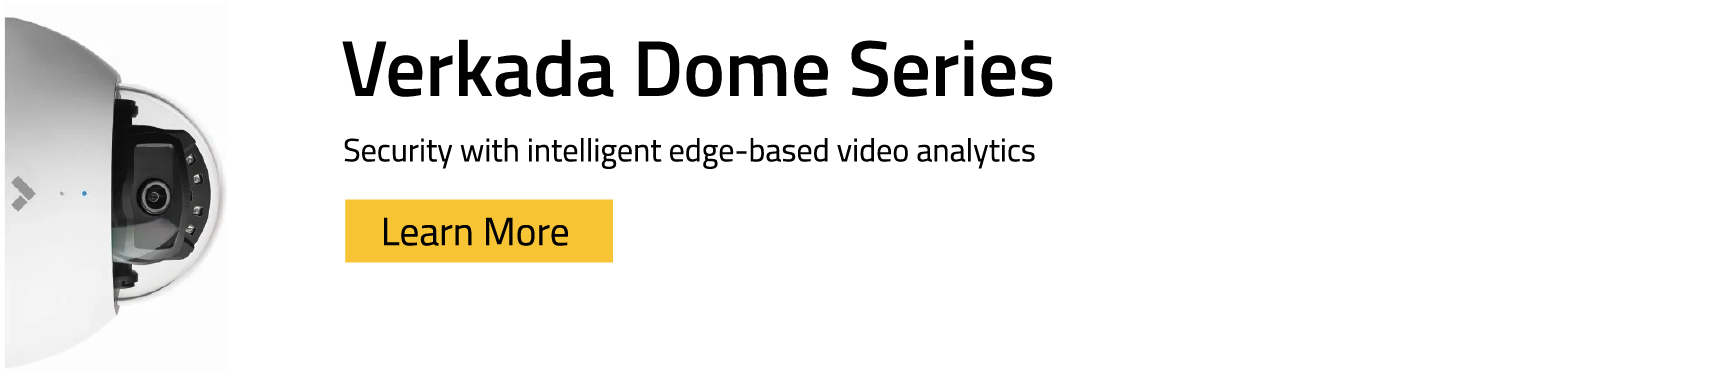 Dome Series Banner